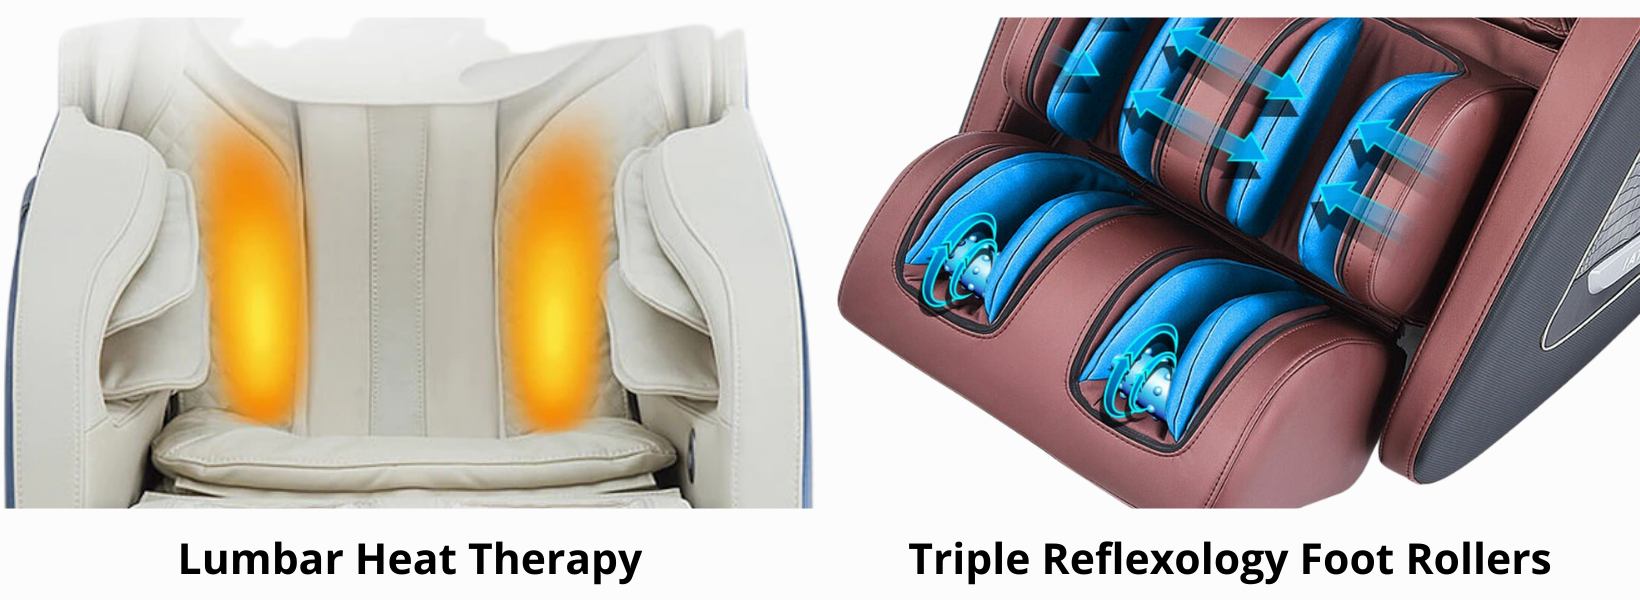 Triple Reflexology Foot Rollers: Drawing on the principles of reflexology, our foot rollers stimulate nerve endings on the feet to relieve tension, improve circulation, and renew vitality throughout the body. 3 distinct foot rollers target specific areas on the pads of the feet. Soft footpads are included to adjust the pressure of the foot rollers to your personal preference. Heat Therapy: The therapeutic heat function targets the lumbar region, helping to ease tension, reduce stress, and alleviate sore muscles. Warm muscles are more pliable, so the massage actions are more effective.